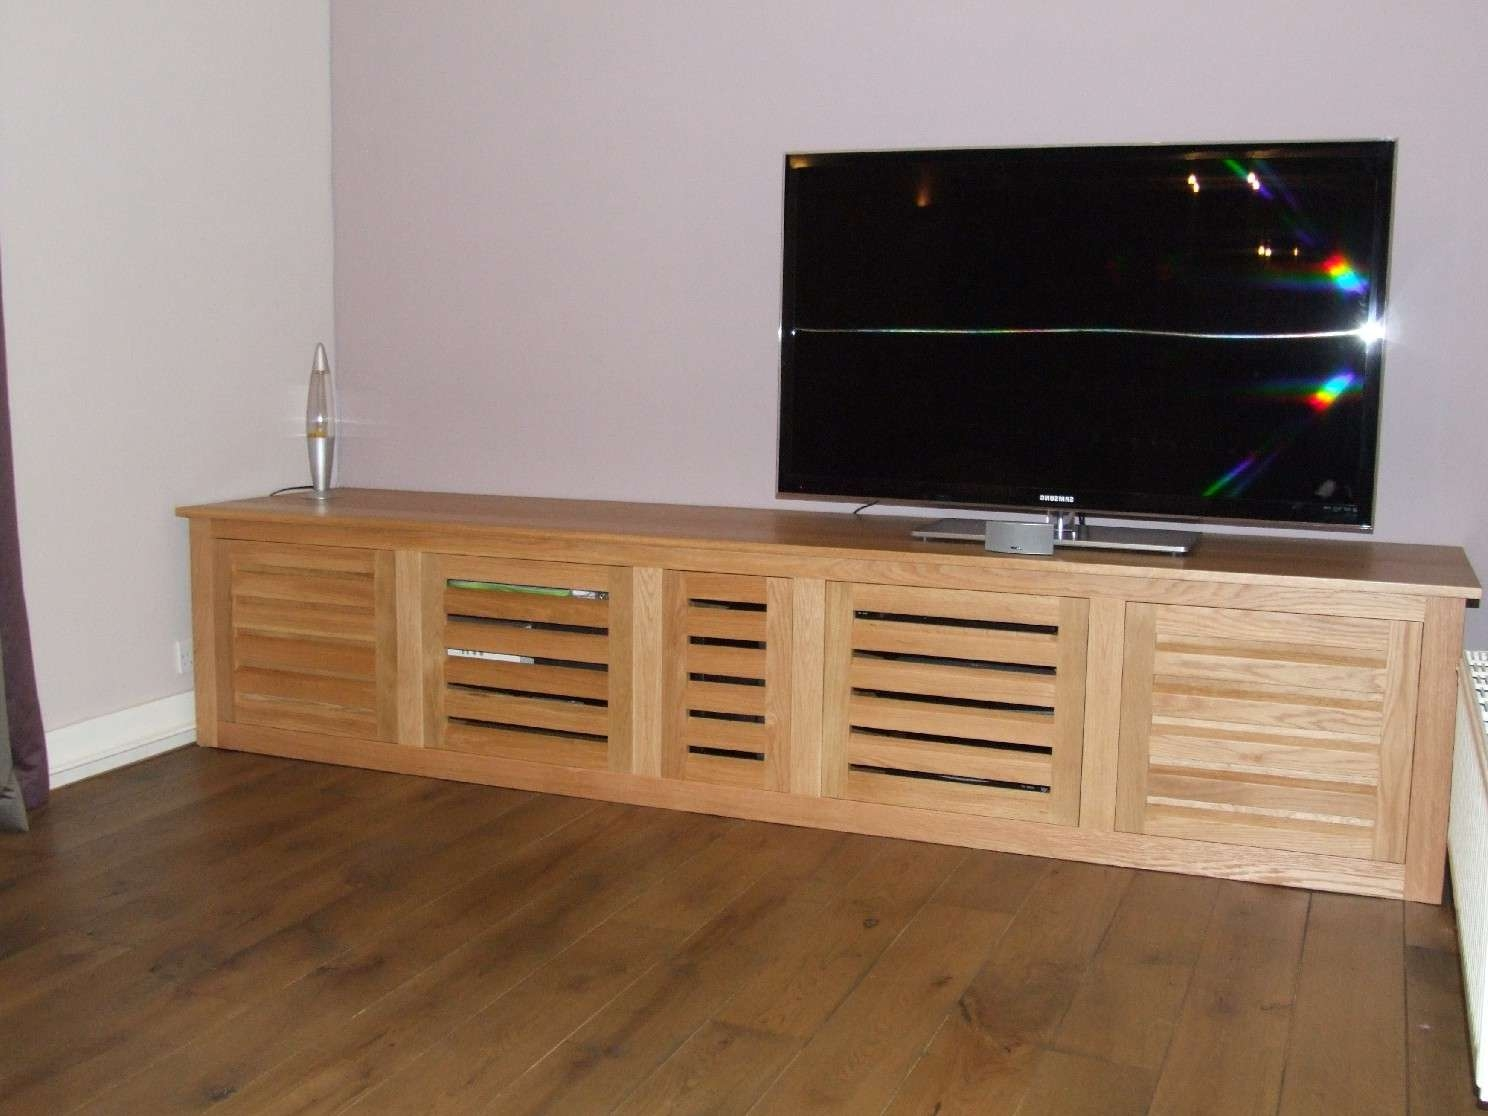 Bespoke Oak Tv Cabinet With Louvered Doors Pertaining To Oak Tv Cabinets With Doors (View 11 of 20)